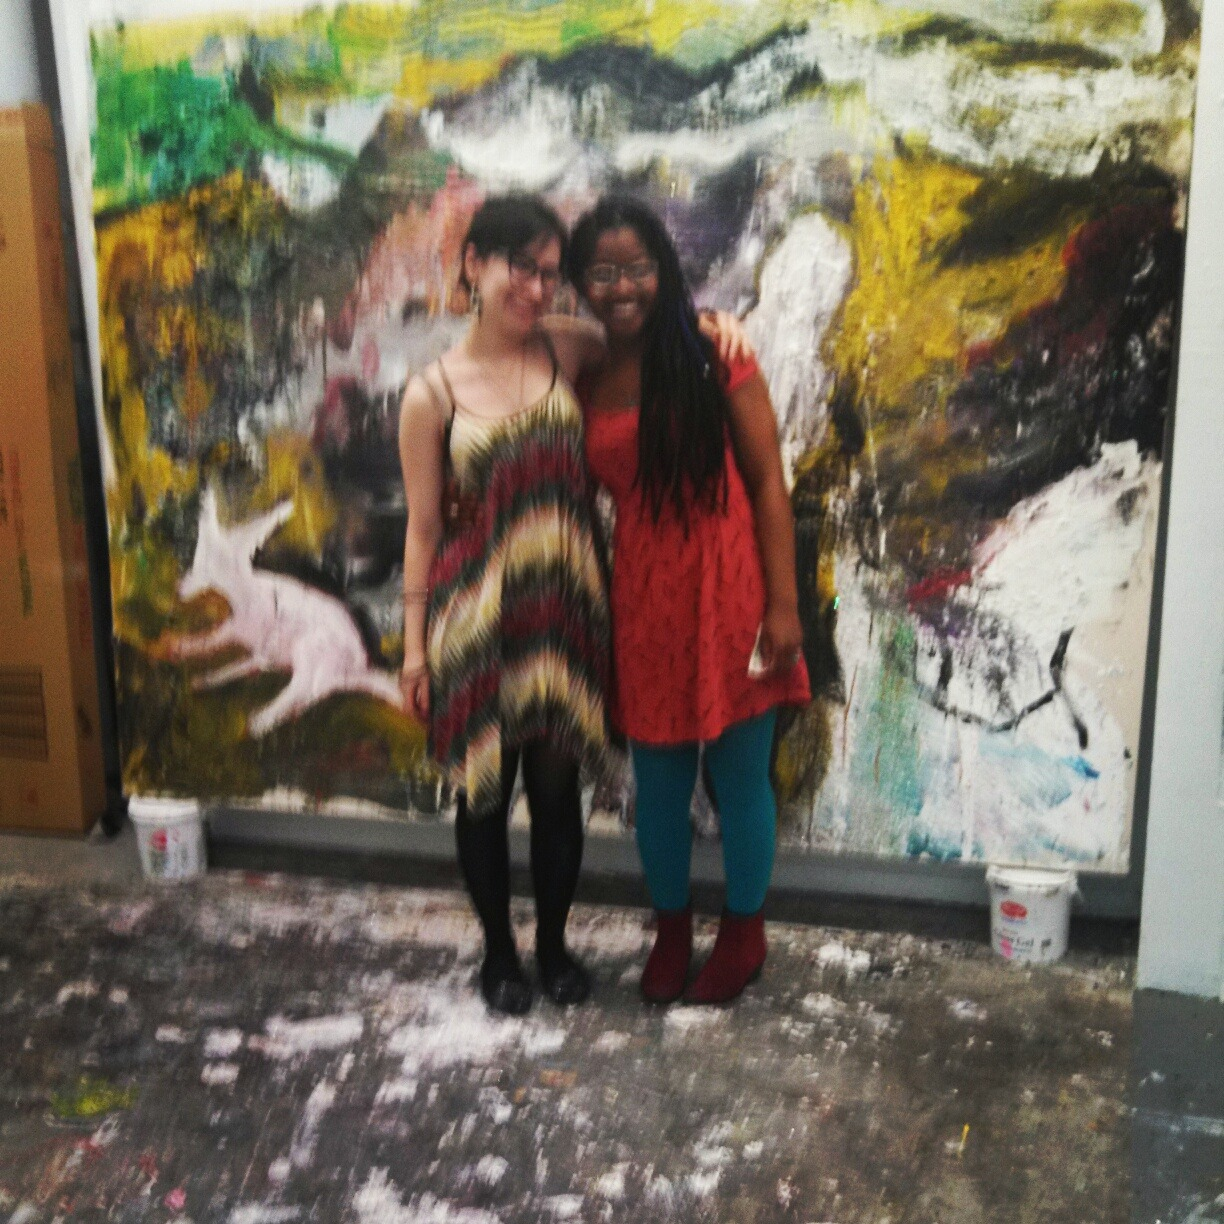 Me and my friend Milanya at my studio!